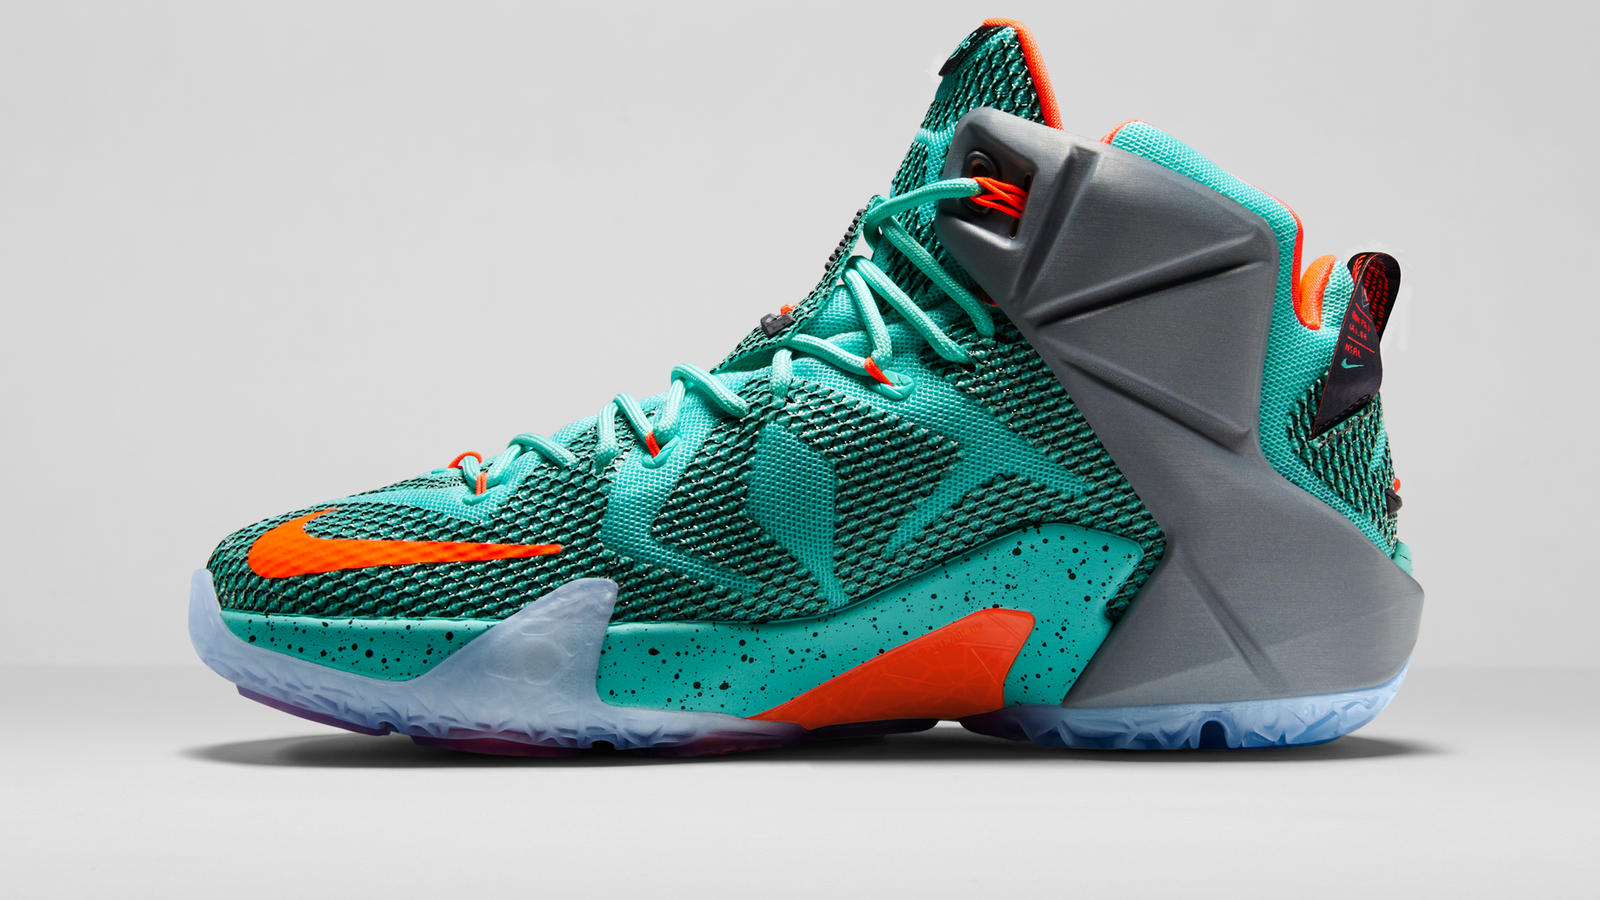 070090973da8 ... inexpensive nike lebron 12 engineered for explosiveness nike news b0683  c9905